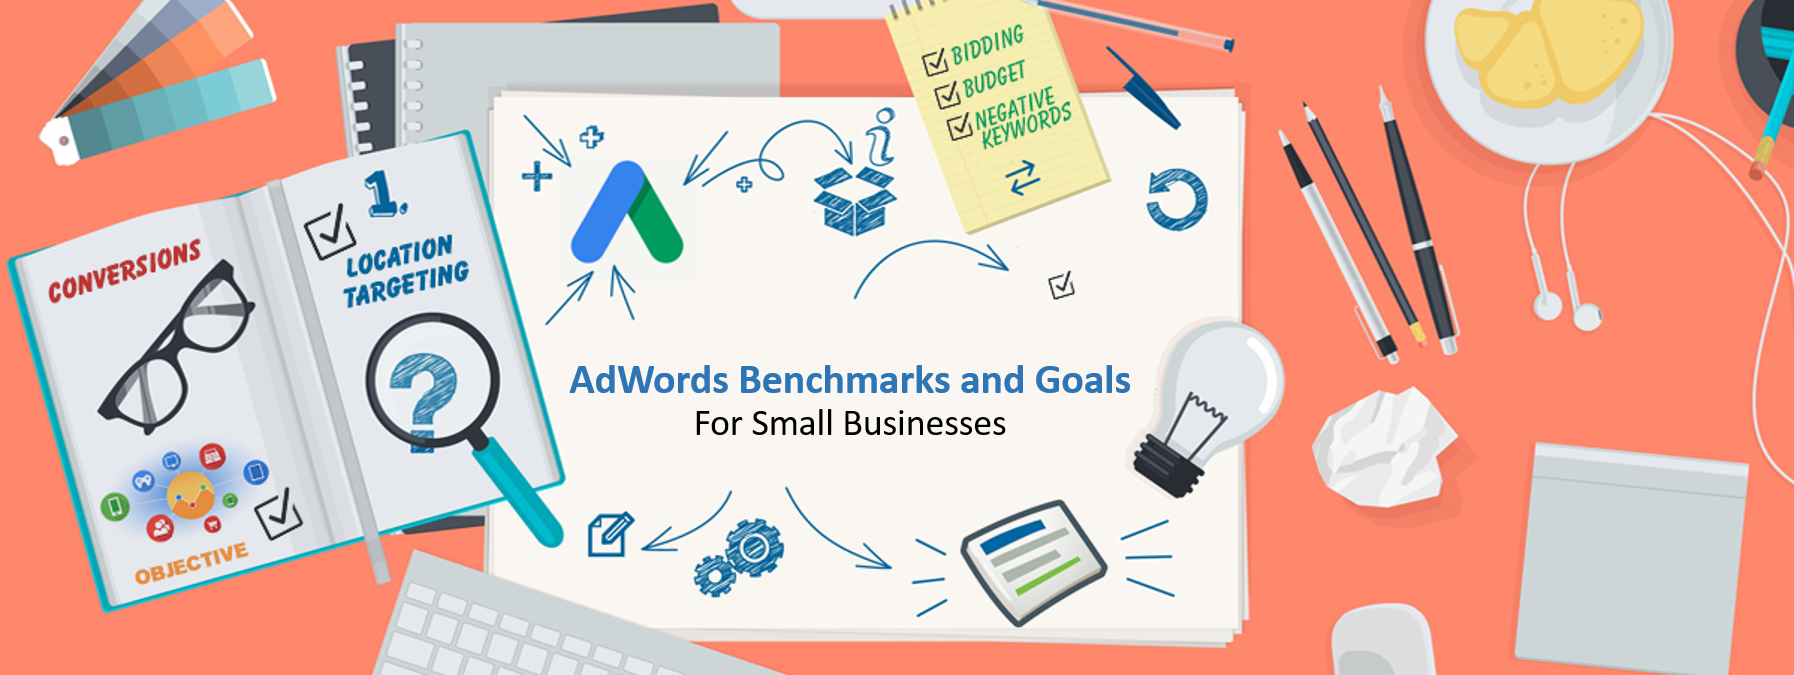 adwords-benchmarks